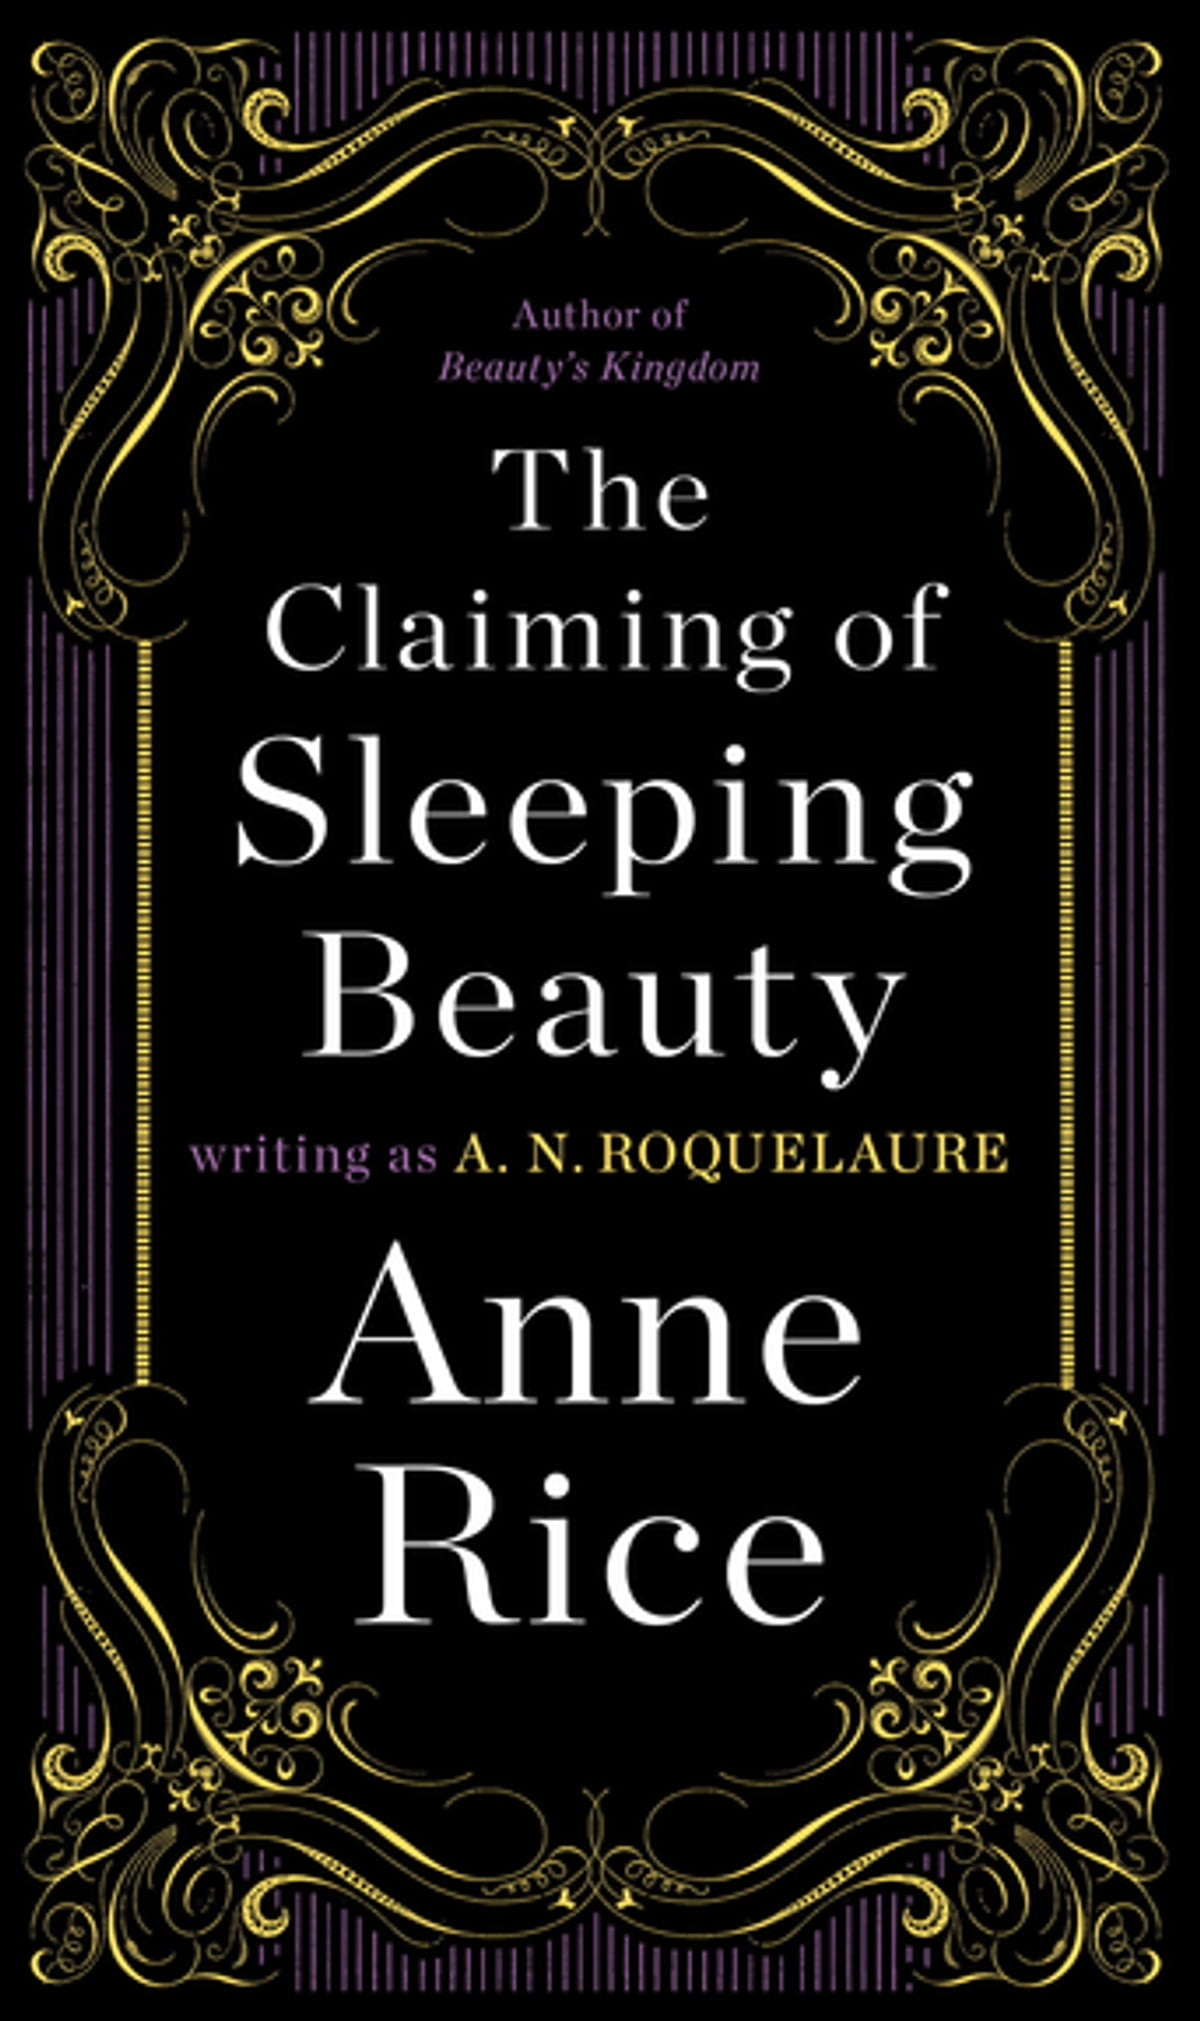 The vampire lestat ebook by anne rice 9780307575937 rakuten kobo the claiming of sleeping beauty a novel ebook by a n roquelaure anne rice fandeluxe Document